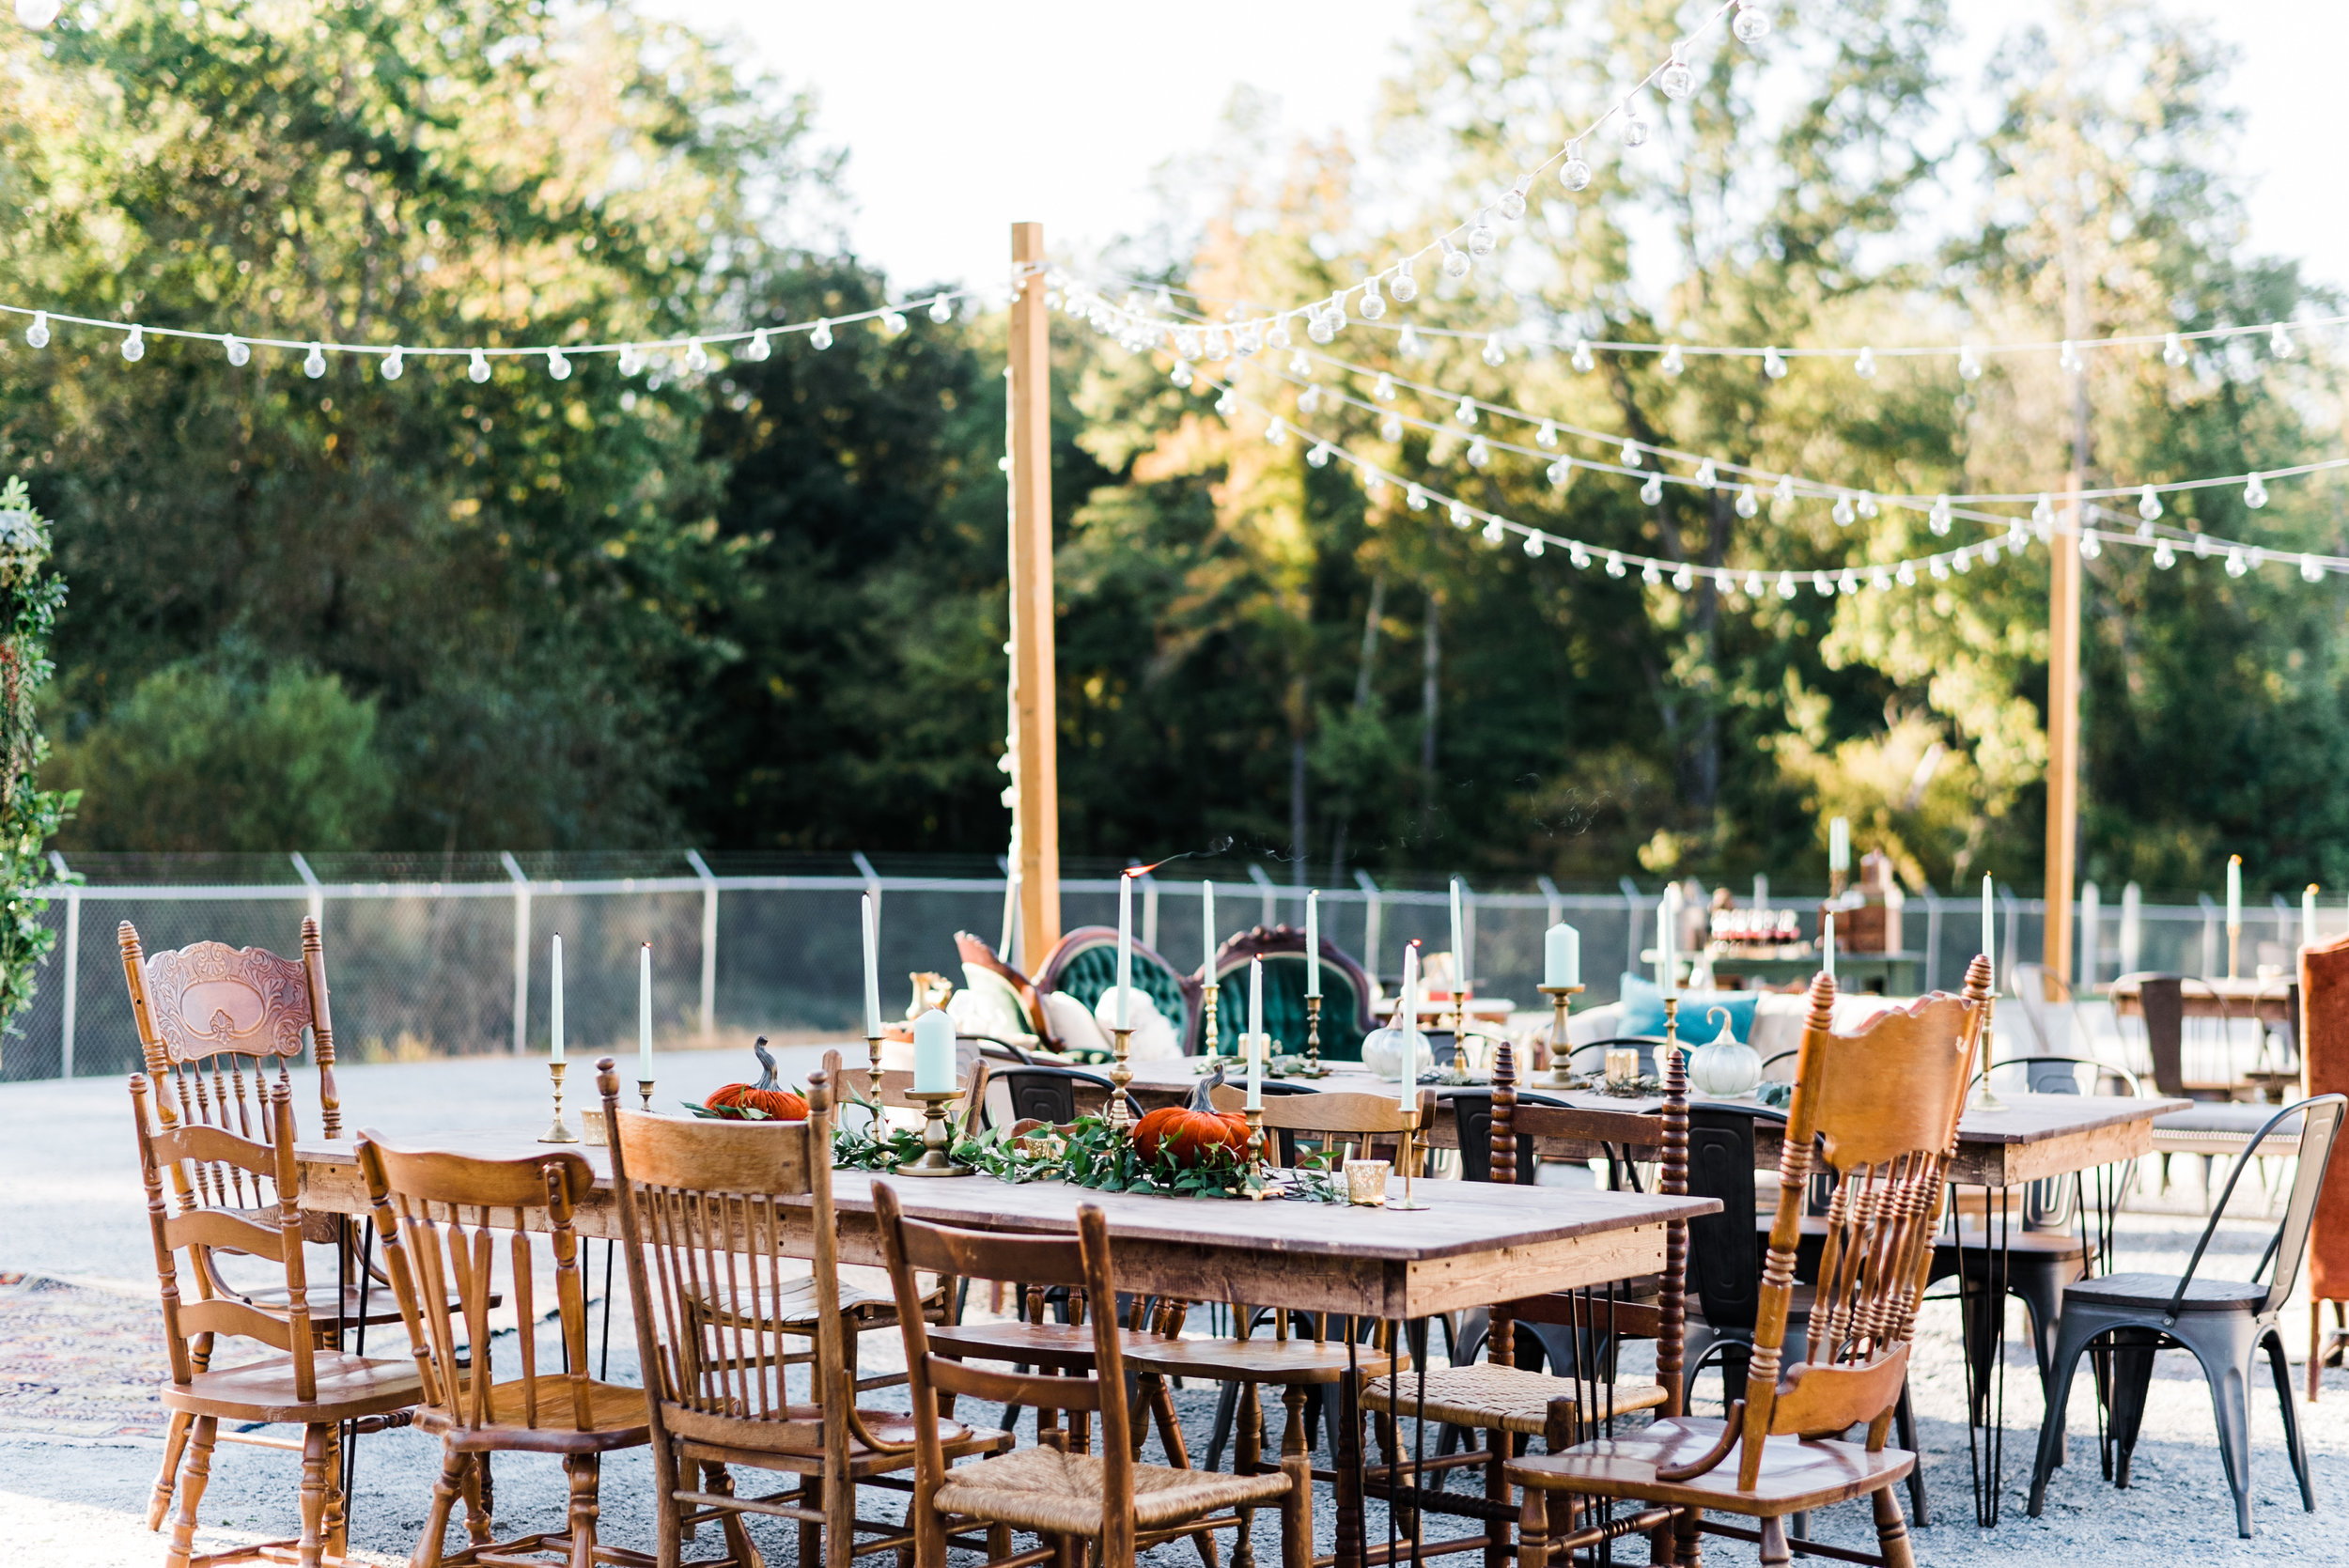 We love thinking about how pretty this will look at night, with those lights and candles filling the space with a soft glow and the wide open sky above…